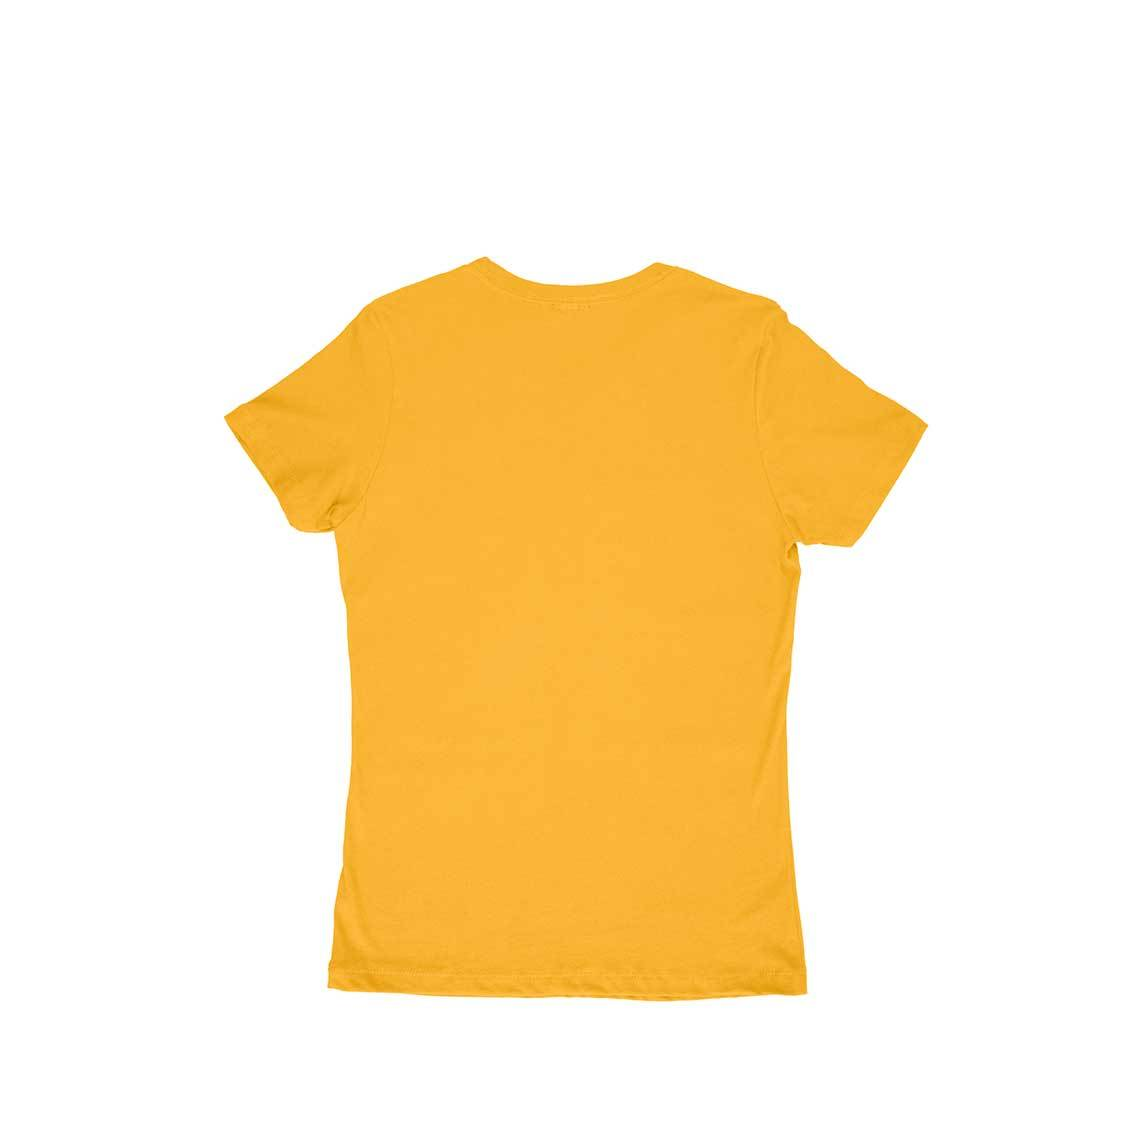 T-shirt women round neck for fashion lovers.